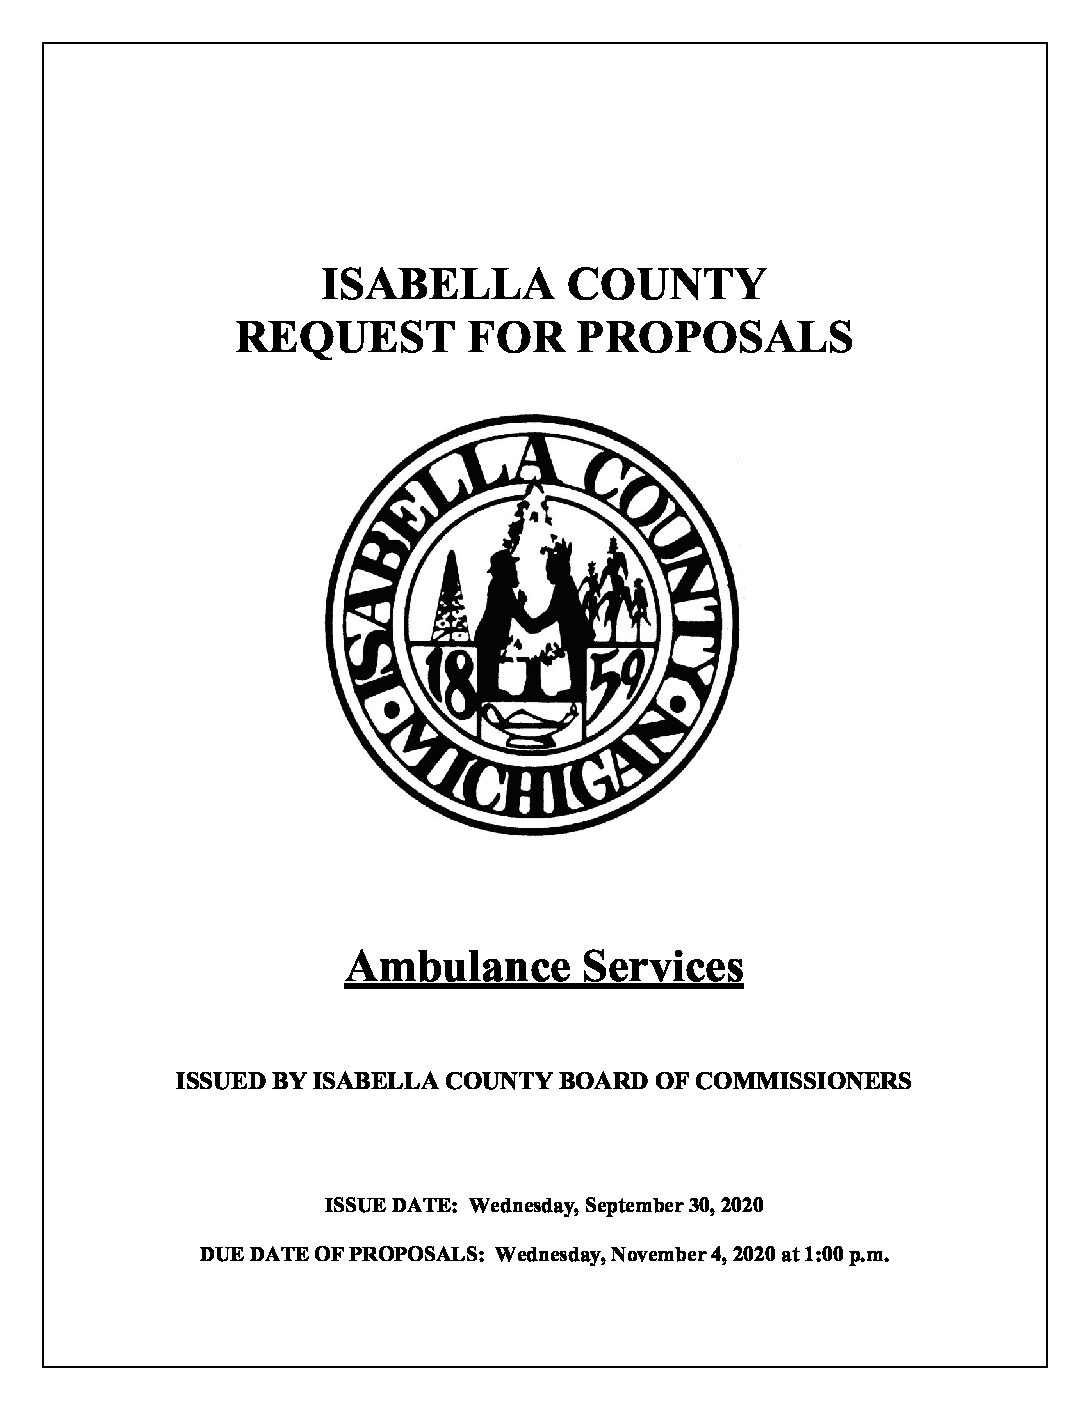 preview image of first page Ambulance Service Request for Proposals